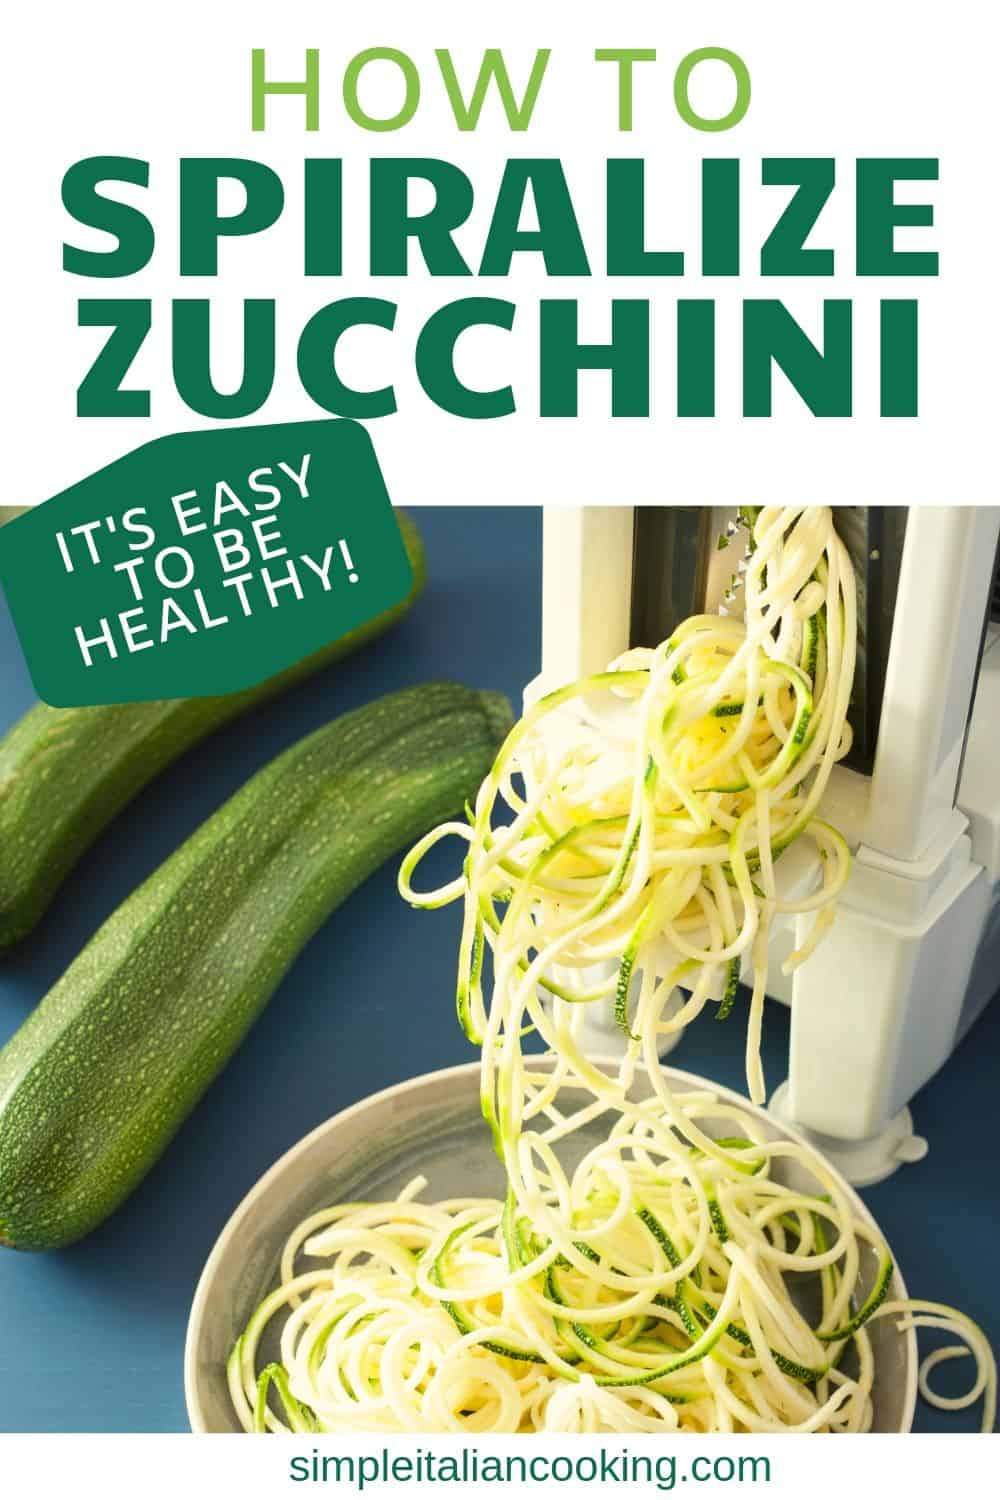 Have fun being healthy by knowing how to use a spiralizer for zucchini!  Also known as zoodles, spiralizing your zucchini can be creative and delicious! Here are some tips and recipes both vegans and vegetarians can enjoy!   #howtospiralizeveggies #spiralizezucchini #zoodles #howtozoodle #howtomakezoodles #veggienoodles